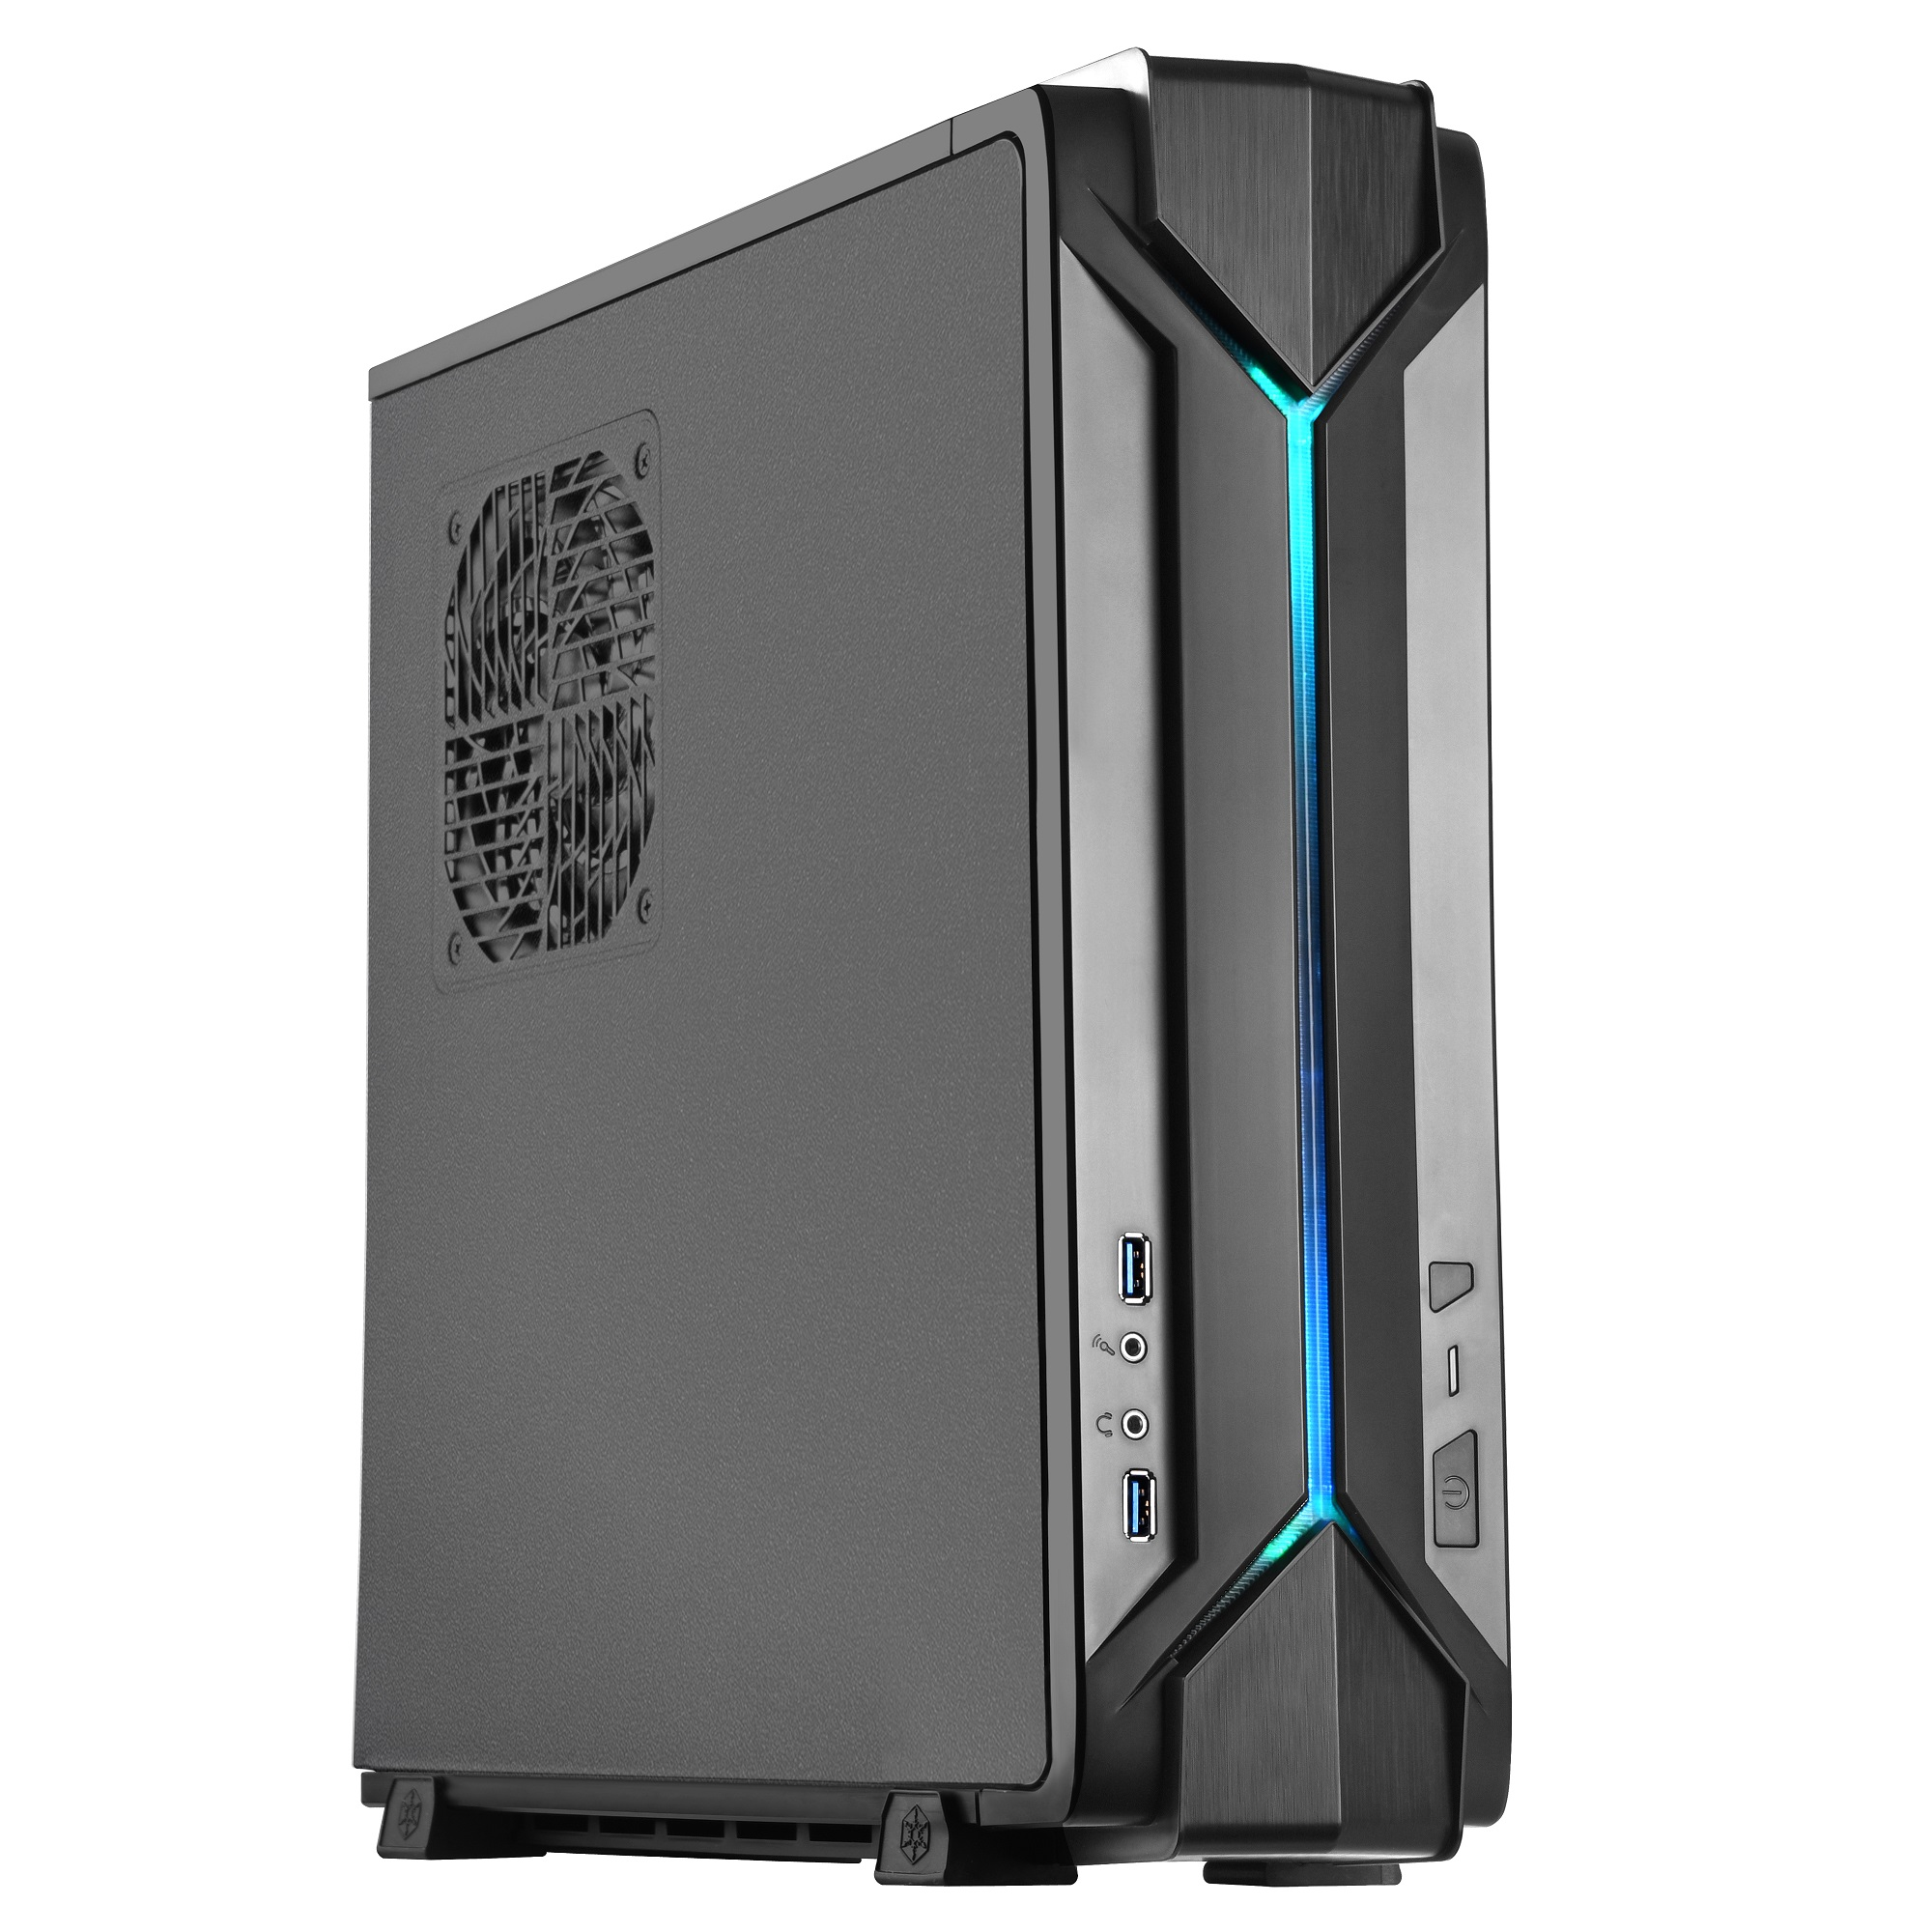 Silverstone Announces New Sff Chassis Rvz03 With Rgb